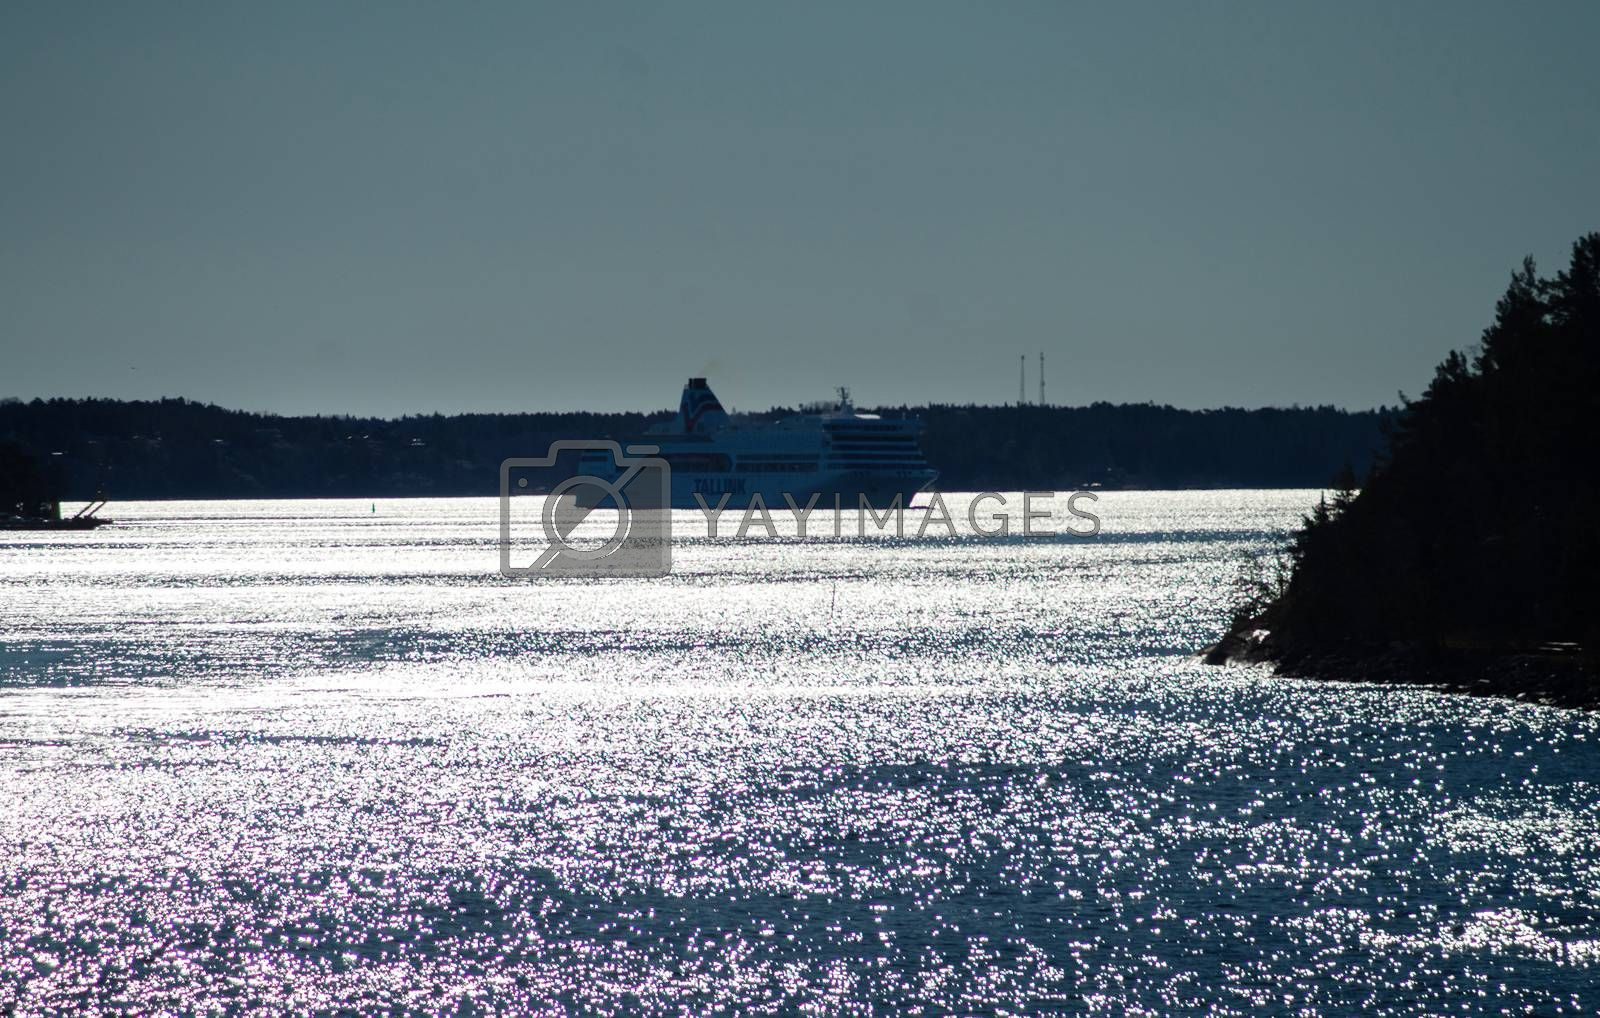 22 April 2019, Stockholm, Sweden. High-speed passenger and car ferry of the Estonian shipping concern Tallink Romantika  equipped with rotary sail in Stockholm skerries.